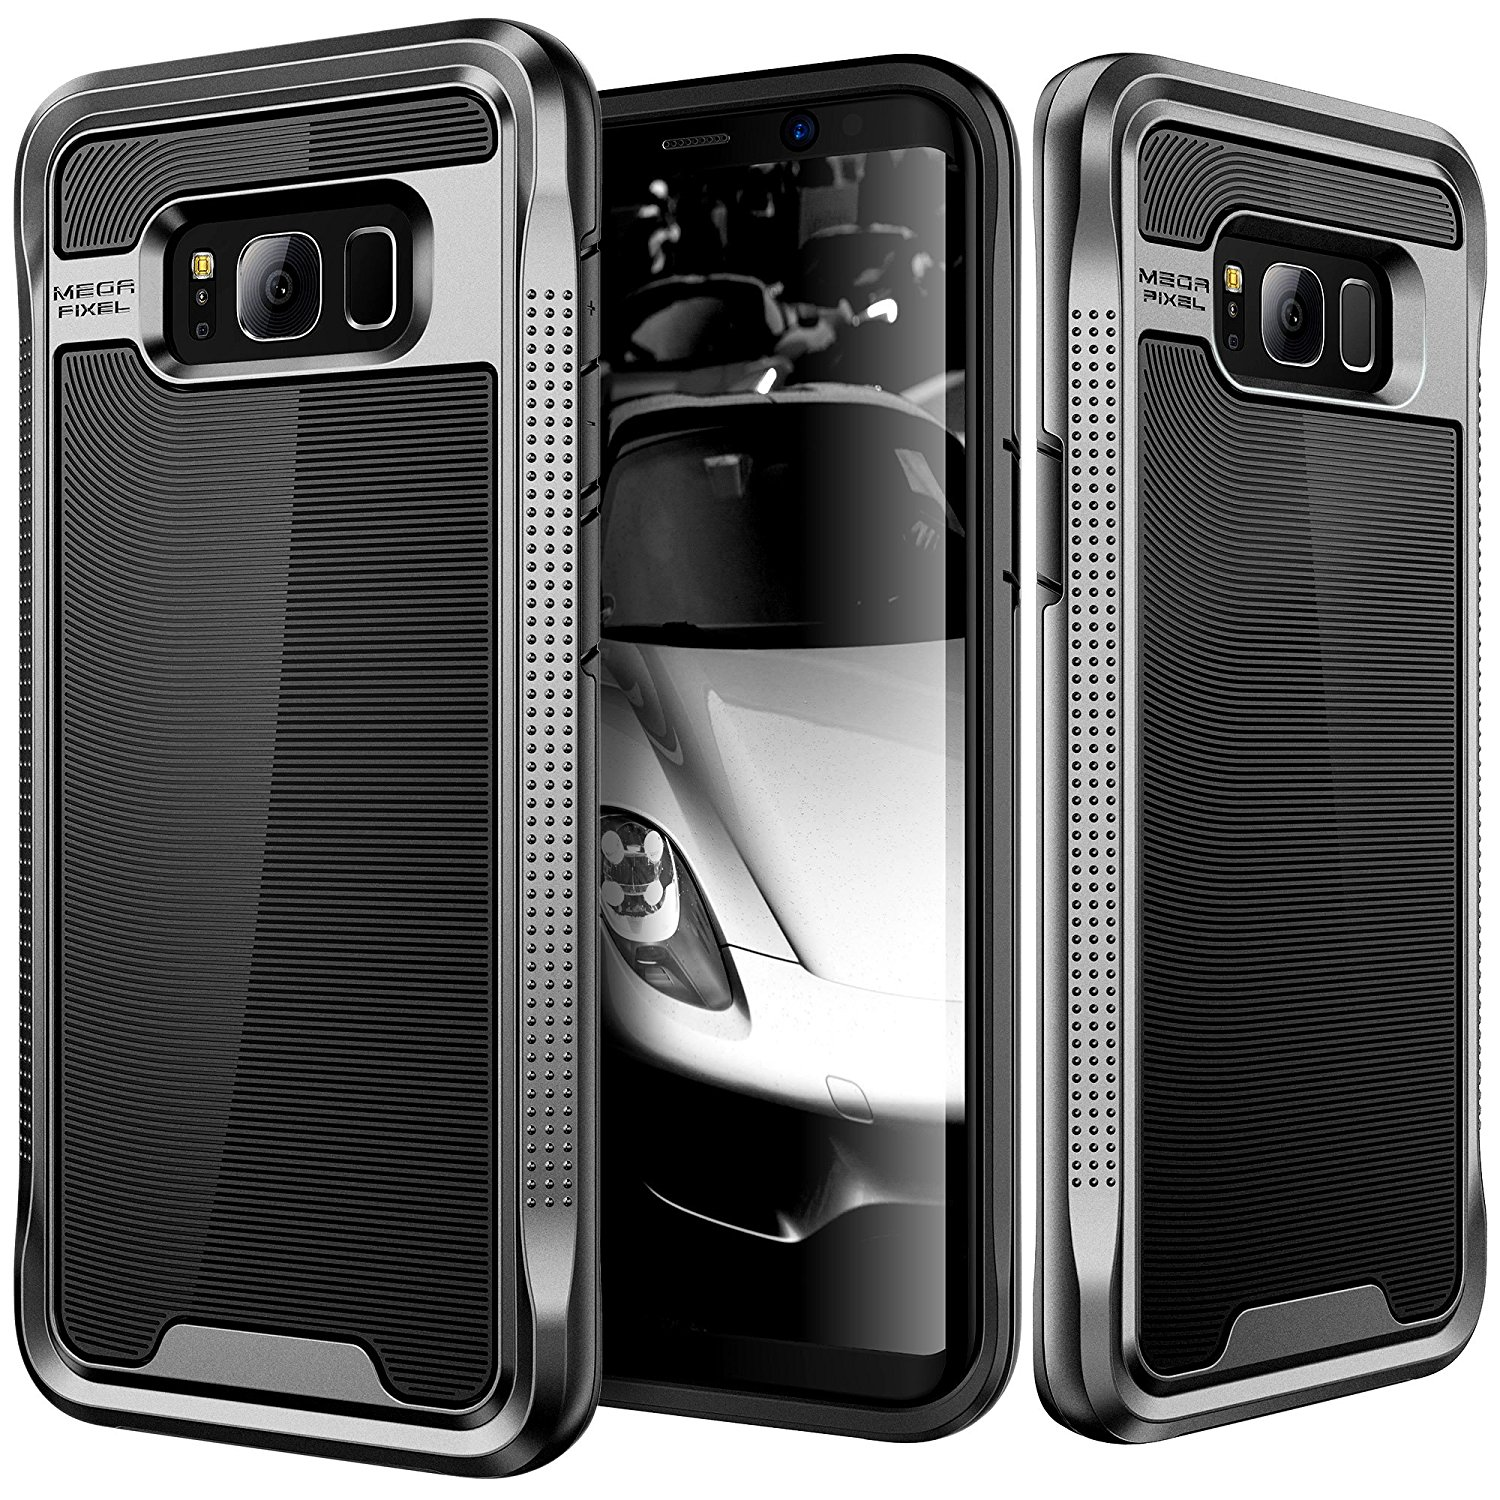 Galaxy S8 Plus Case, E LV Galaxy S8 Plus - Hybrid [Scratch/Dust Proof] Armor Defender Slim Shock-Absorption Bumper Case for Samsung Galaxy S8 Plus - [BLACK/GUNMETAL]